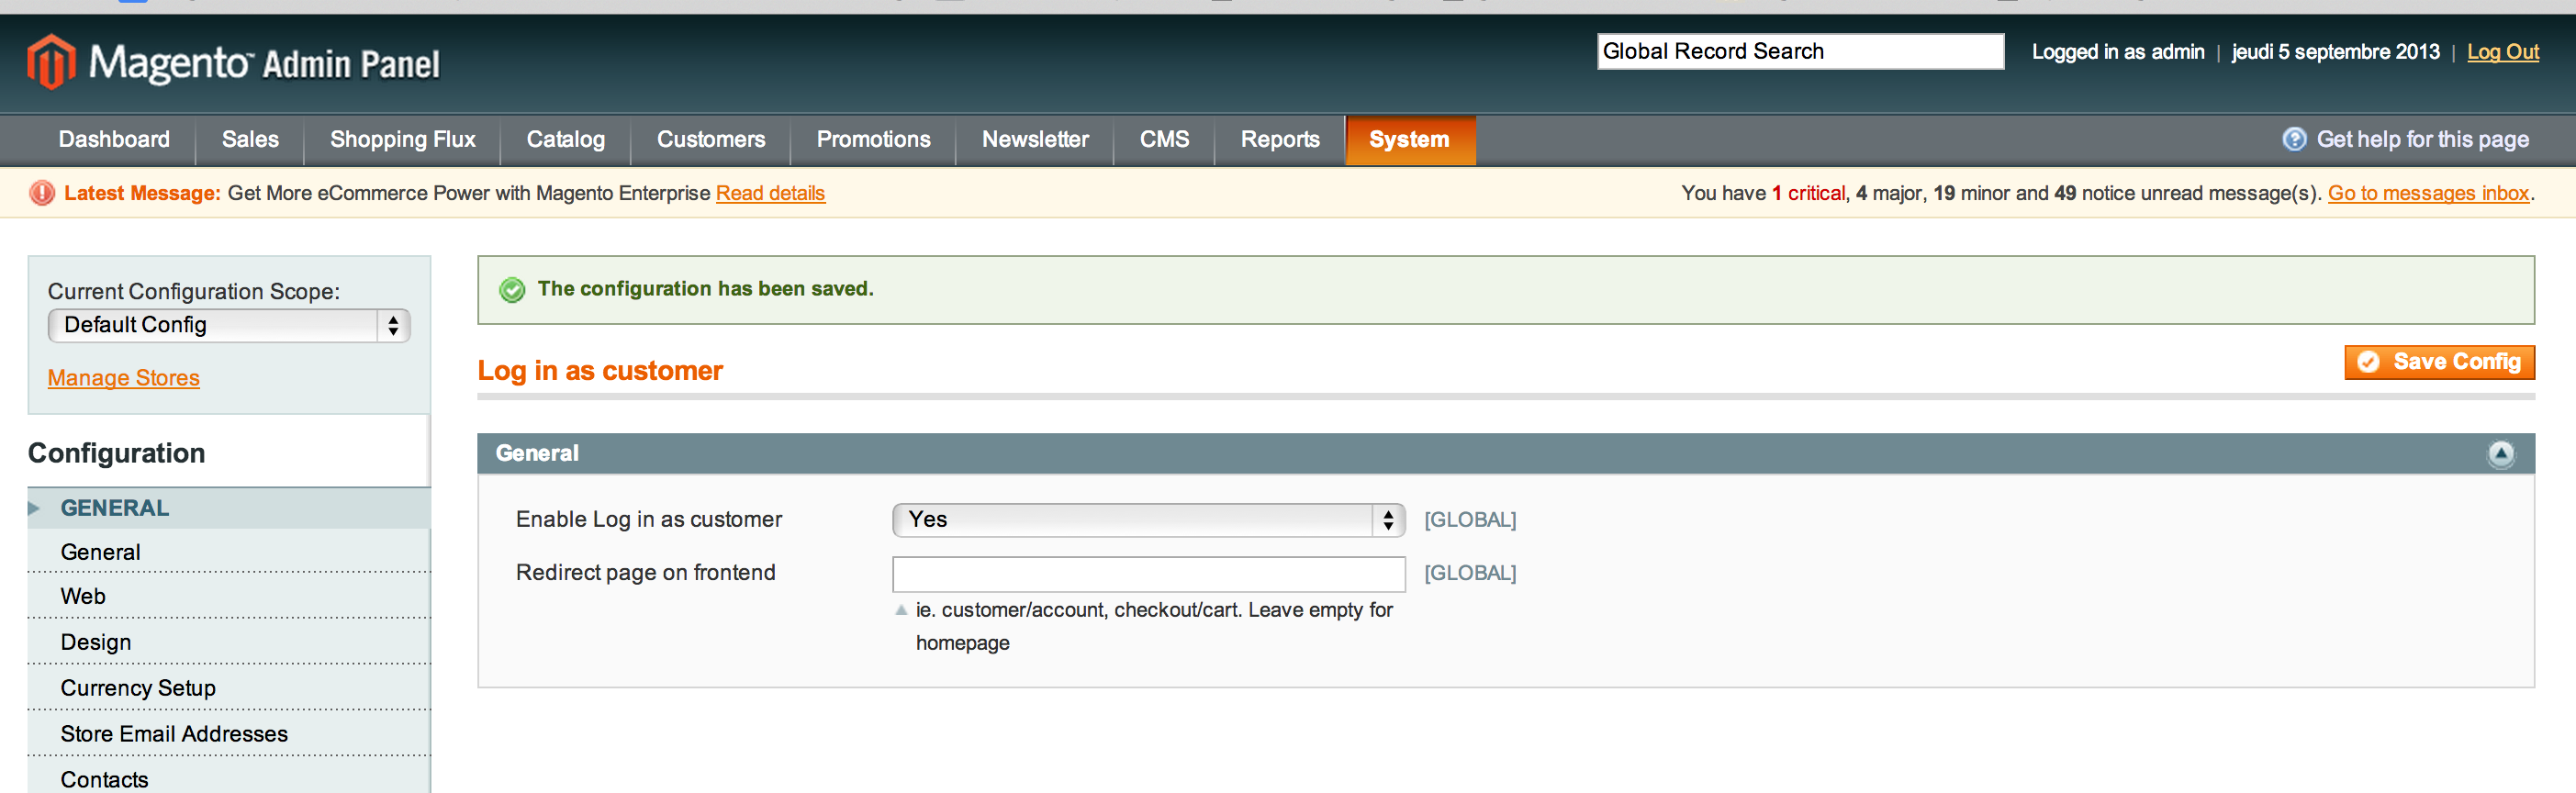 Login as customer magento configuration